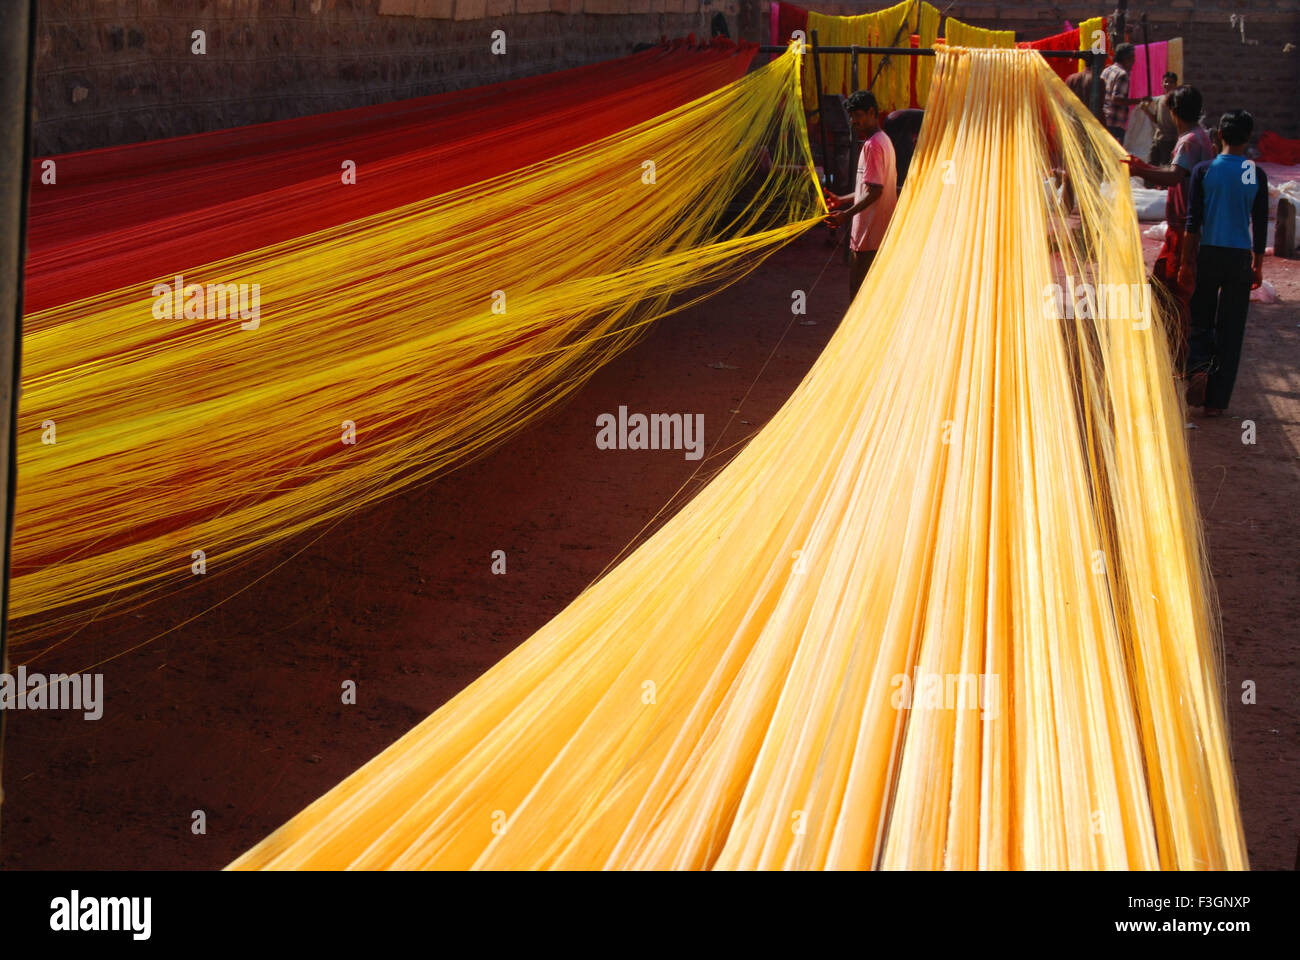 Man separating and drying silky thread for making silky garland - Stock Image